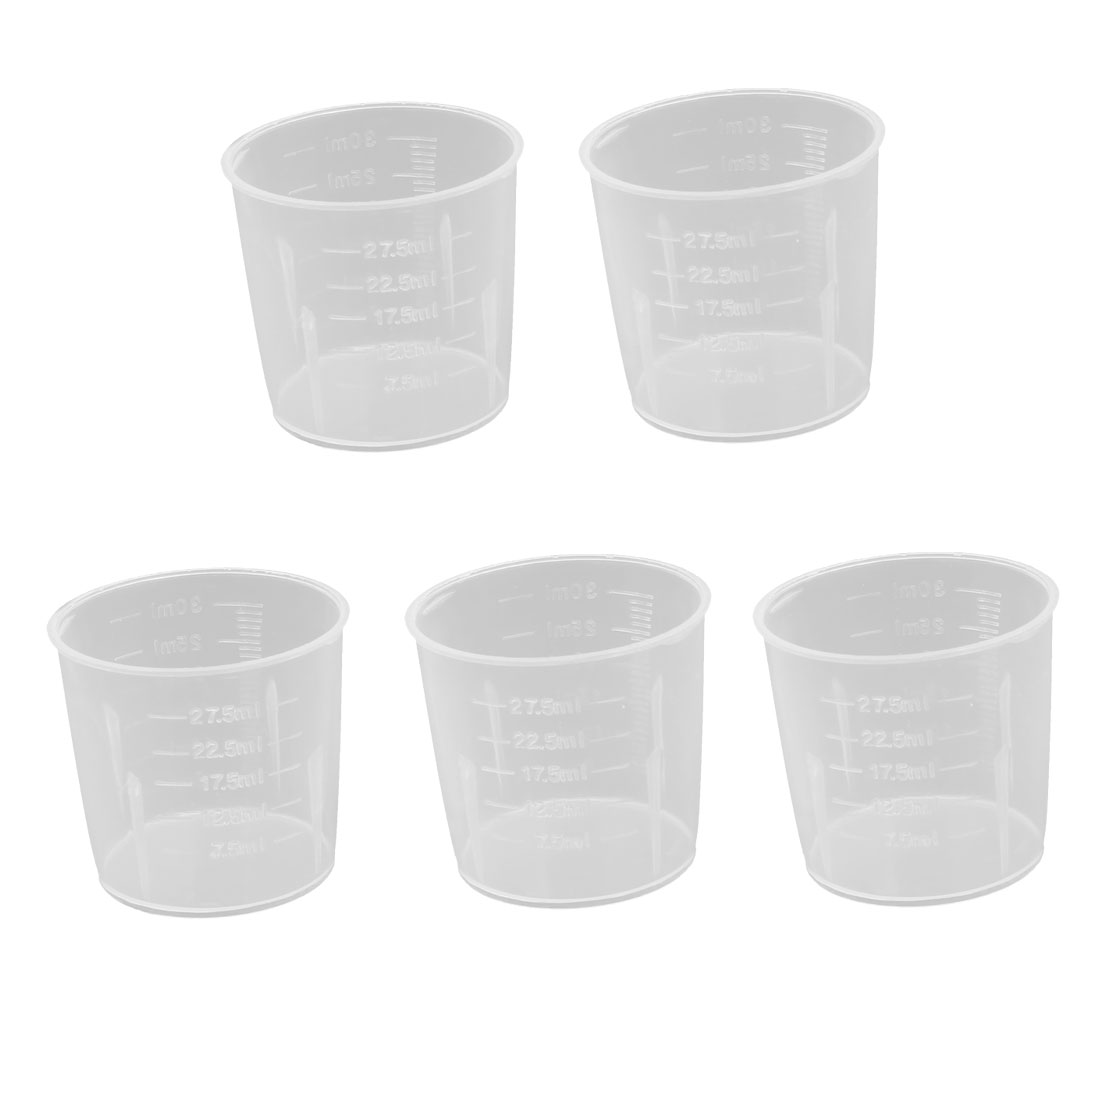 30mL PP Volumetric Measuring Cup Container Laboratory Beaker Clear 5pcs by Unique-Bargains